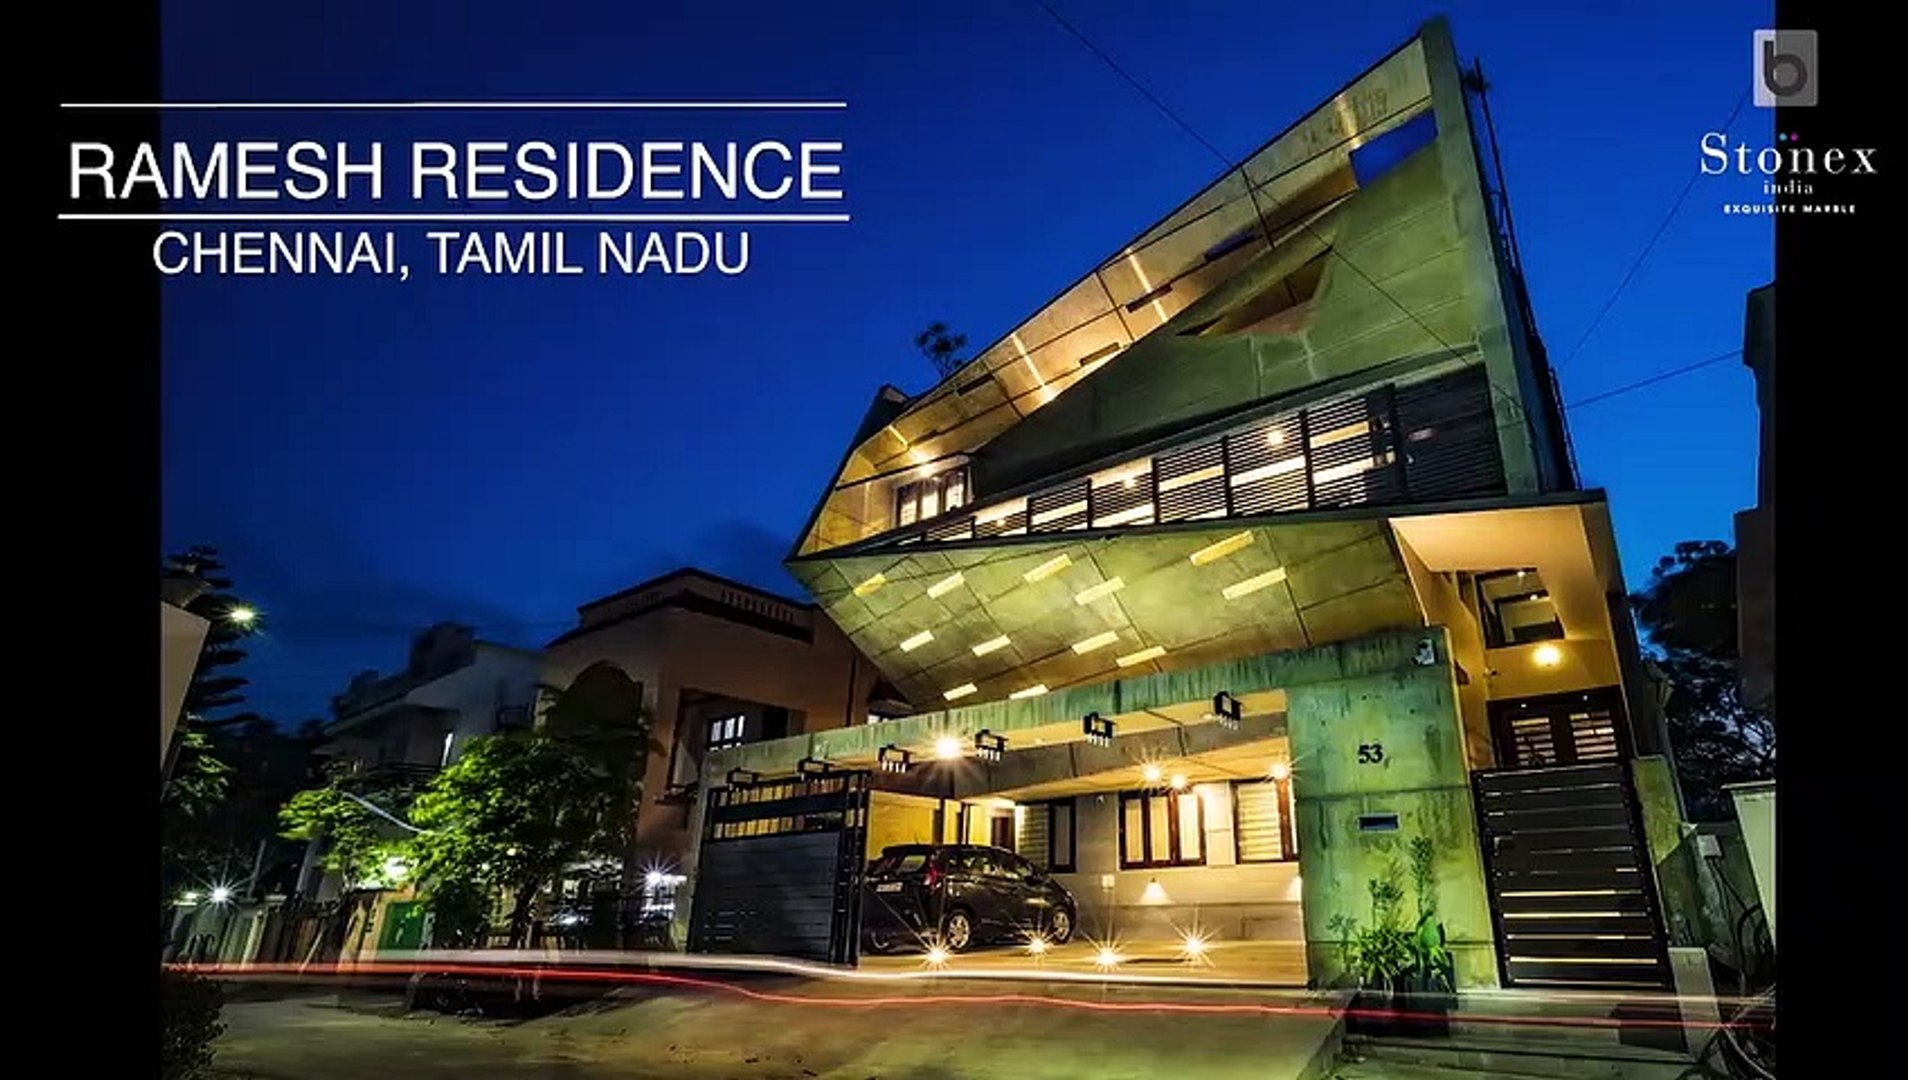 2 600 Sq Ft Ramesh Residence In Chennai By Murali Architects Video Dailymotion